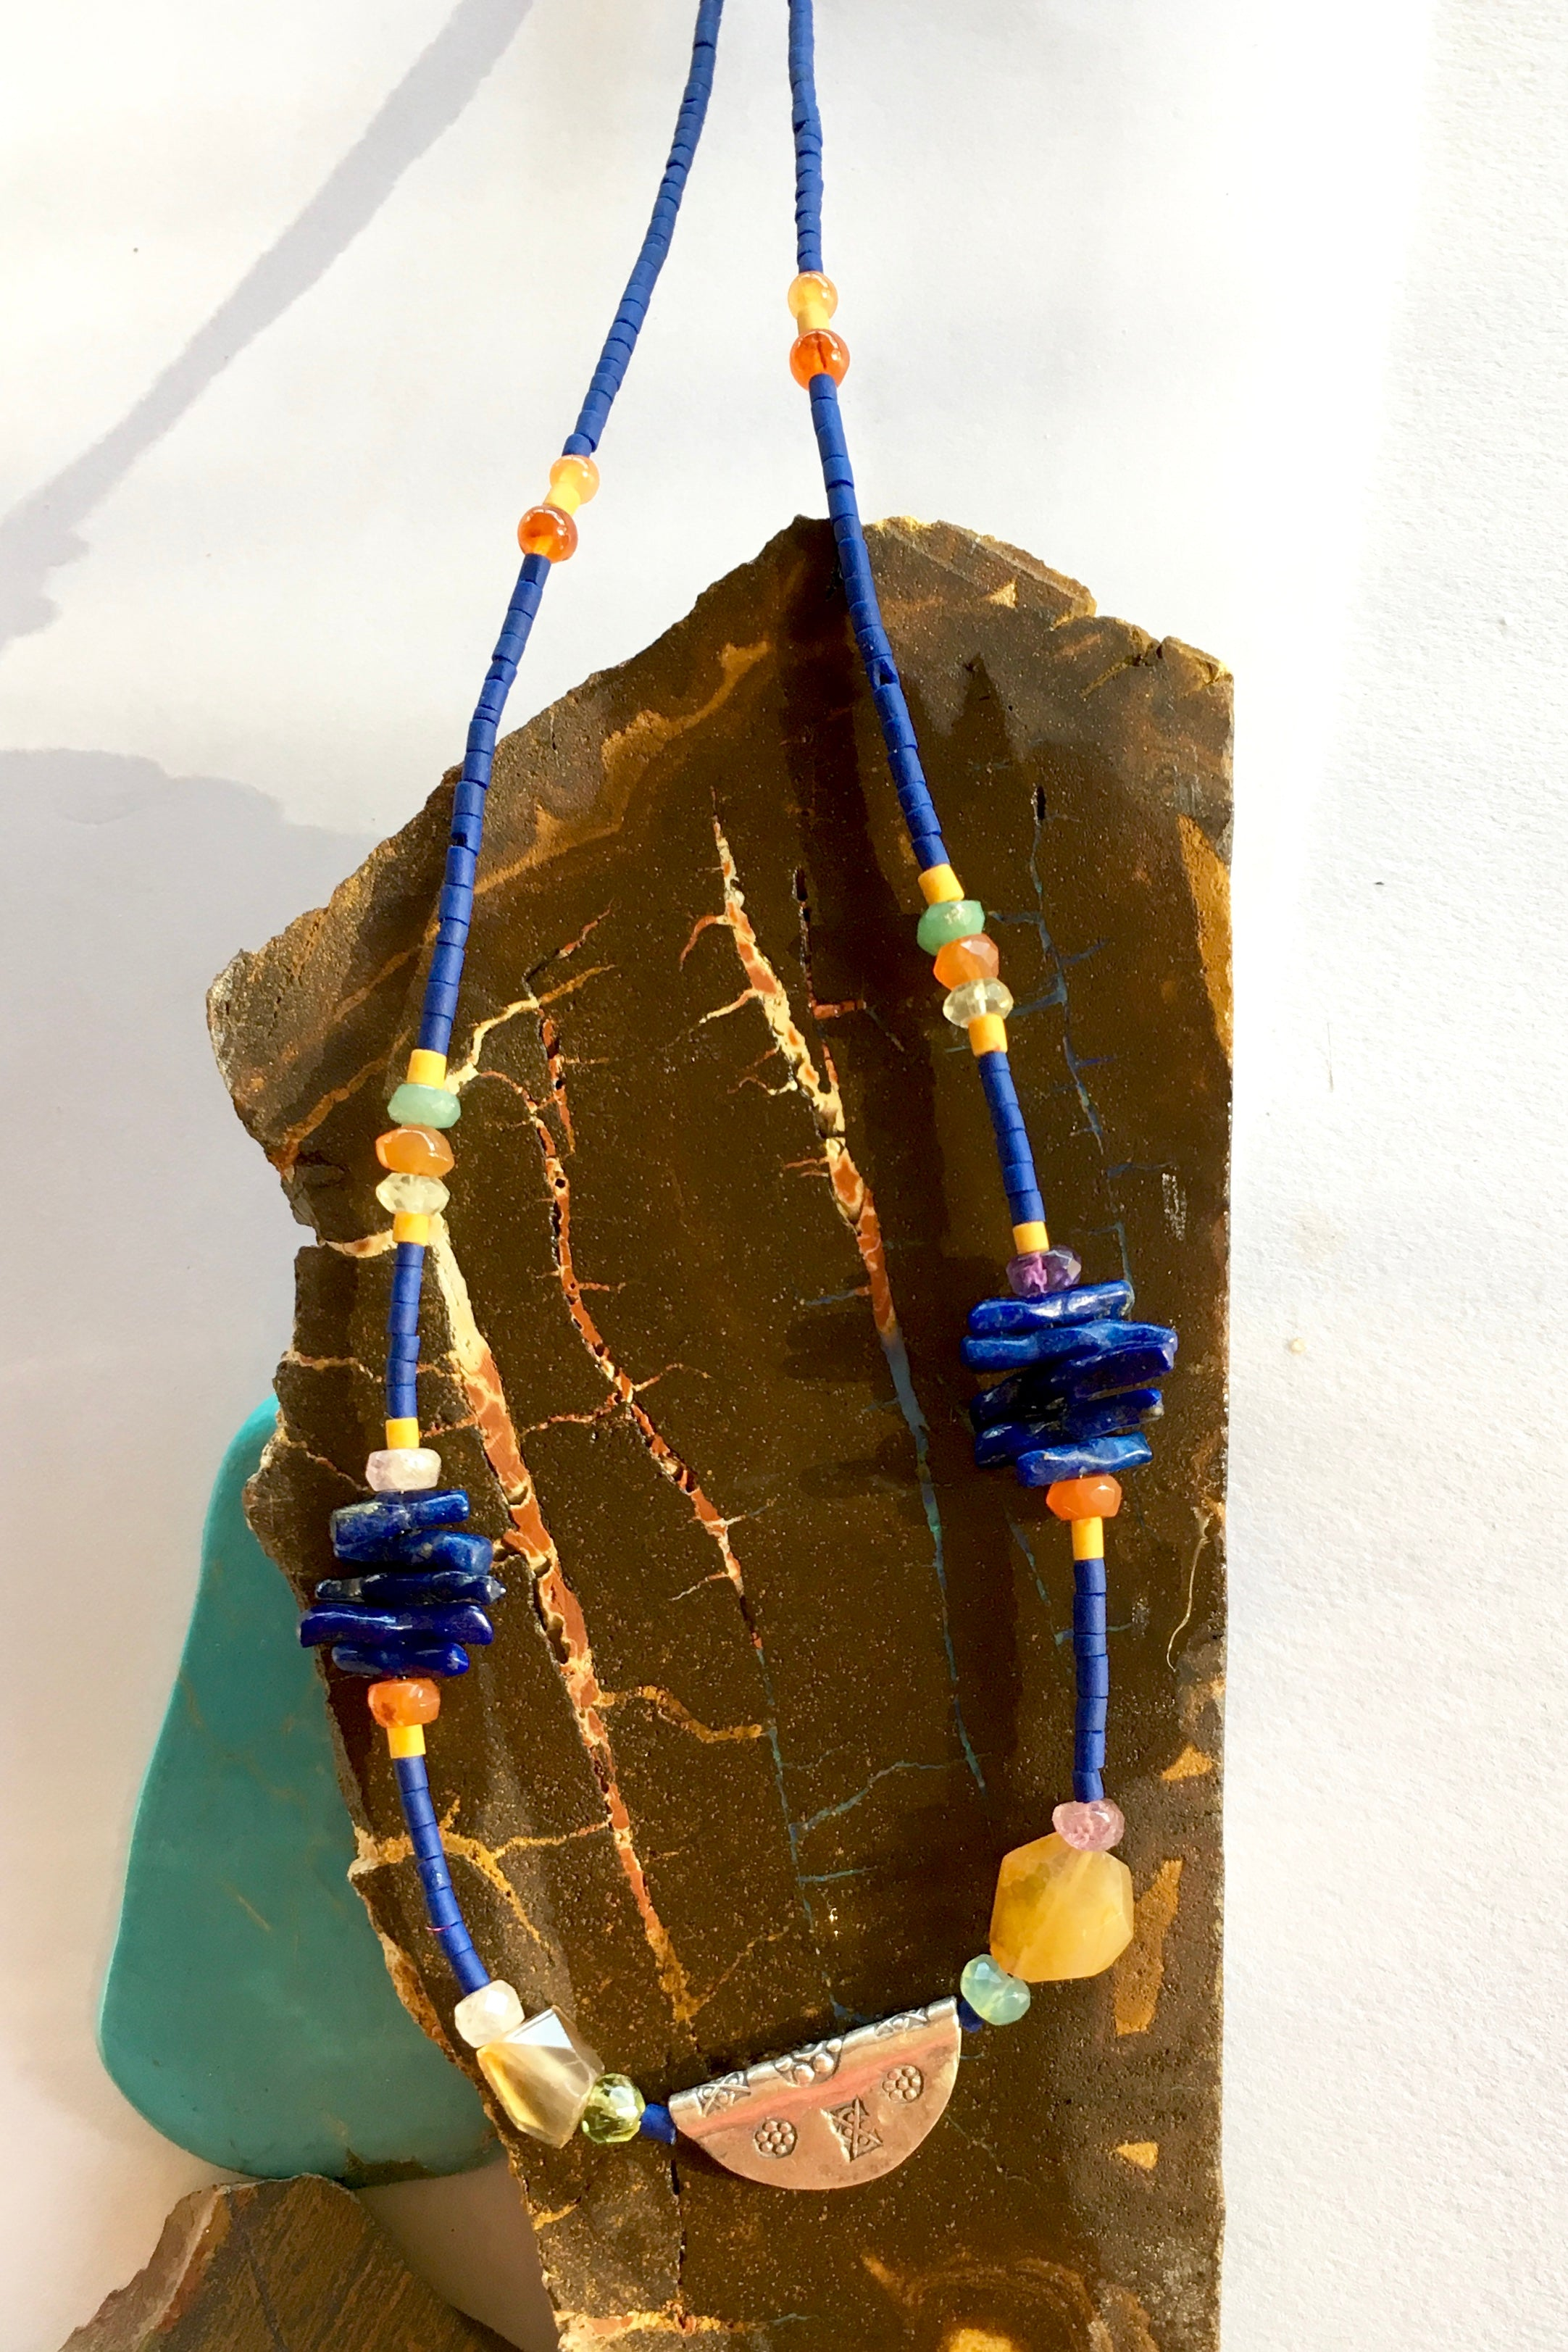 Necklace Cay Amulet with Lapis Lazuli is 40cm in length Beads include Lapis Lazuli, carnelian, faceted semi precious stone and Turkish glass beads.